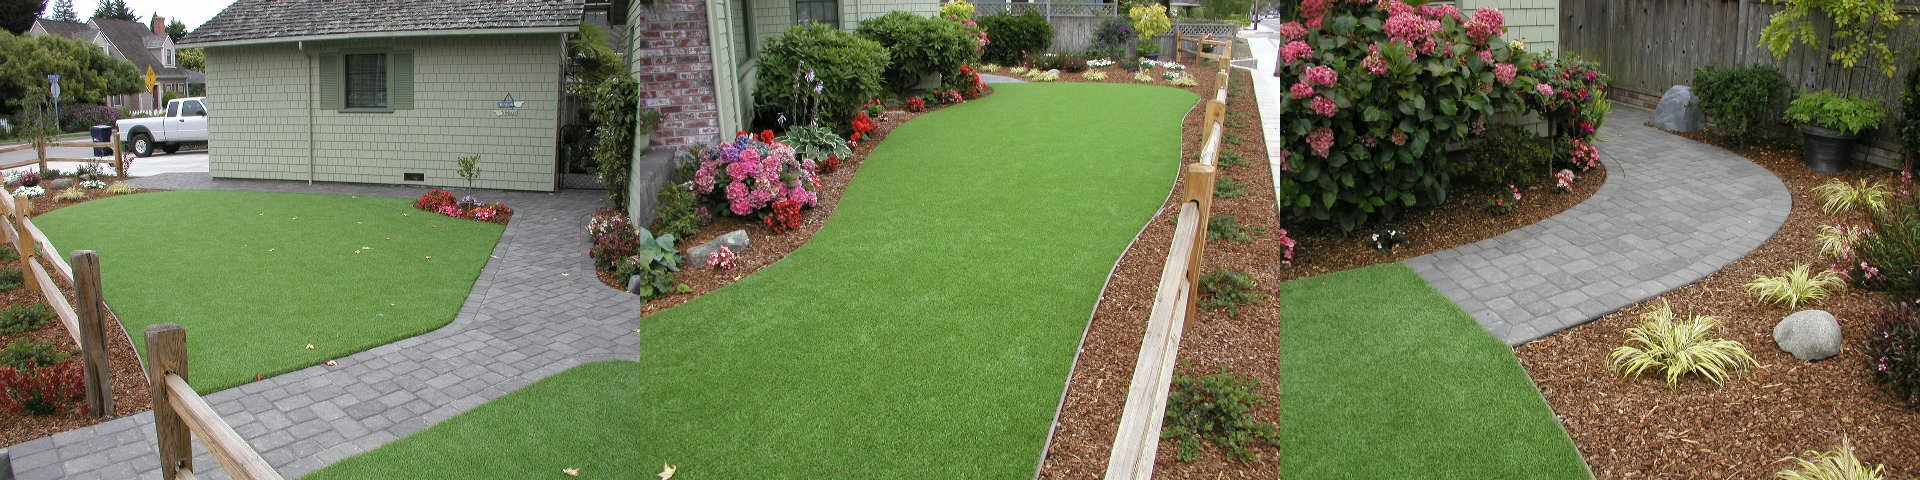 Pavers and Artificial Turf in Capitola, CA